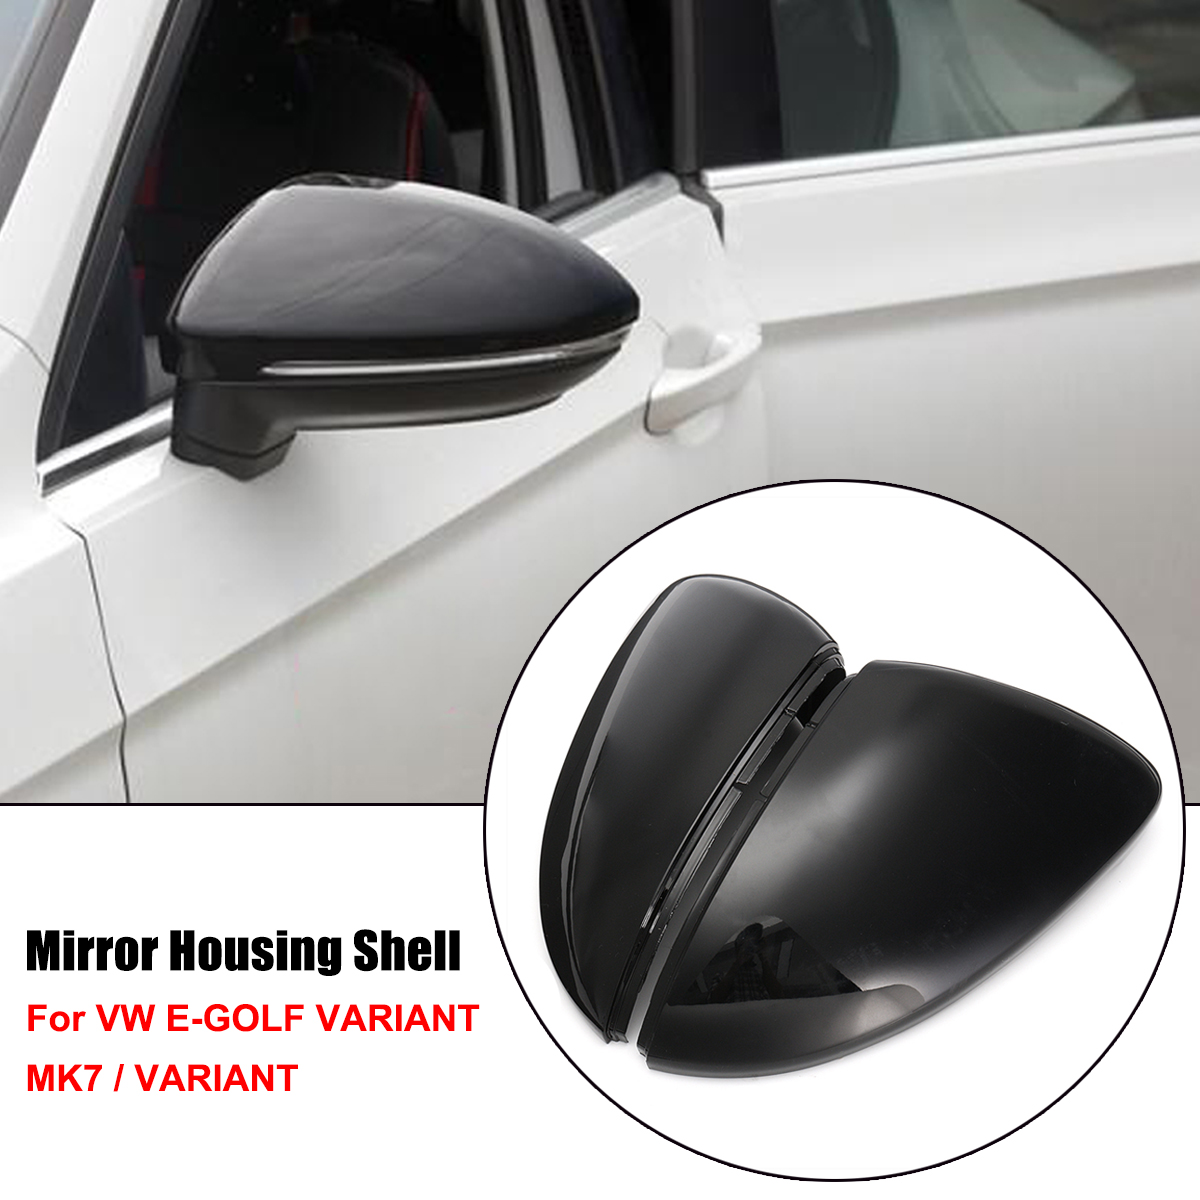 Pair Wing Case Rearview Mirror Cover For VW Golf MK7 Golf Variant E-Golf L+R помада divage crystal shine 30 цвет 30 variant hex name 8c0317